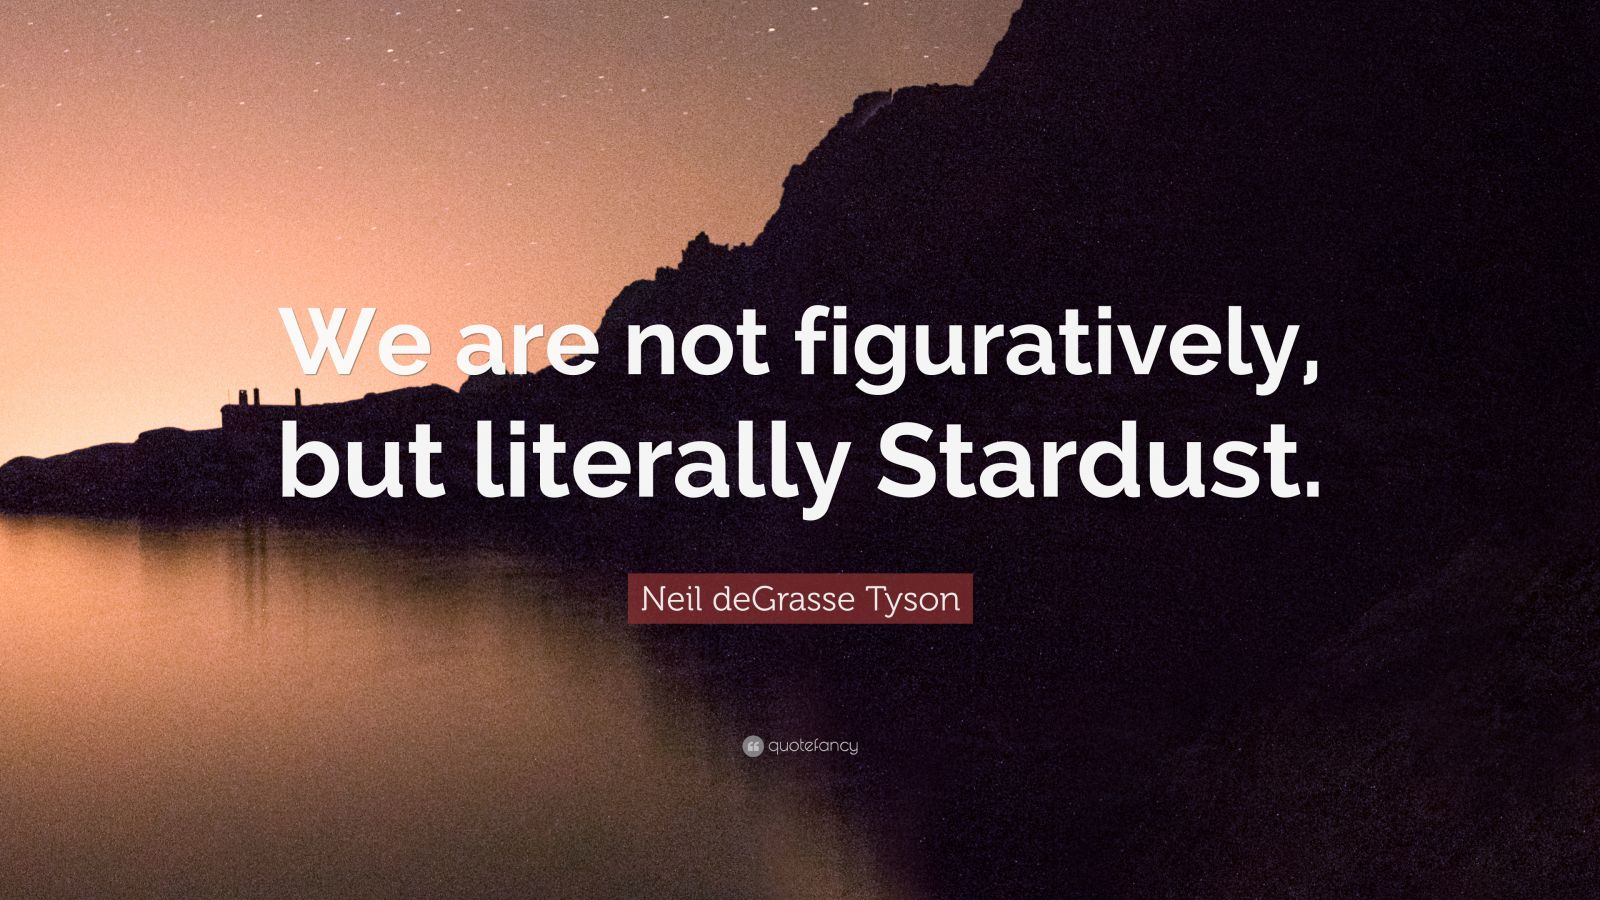 Summary 10 Memorable Neil Degrasse Tyson Quotes Mental Floss